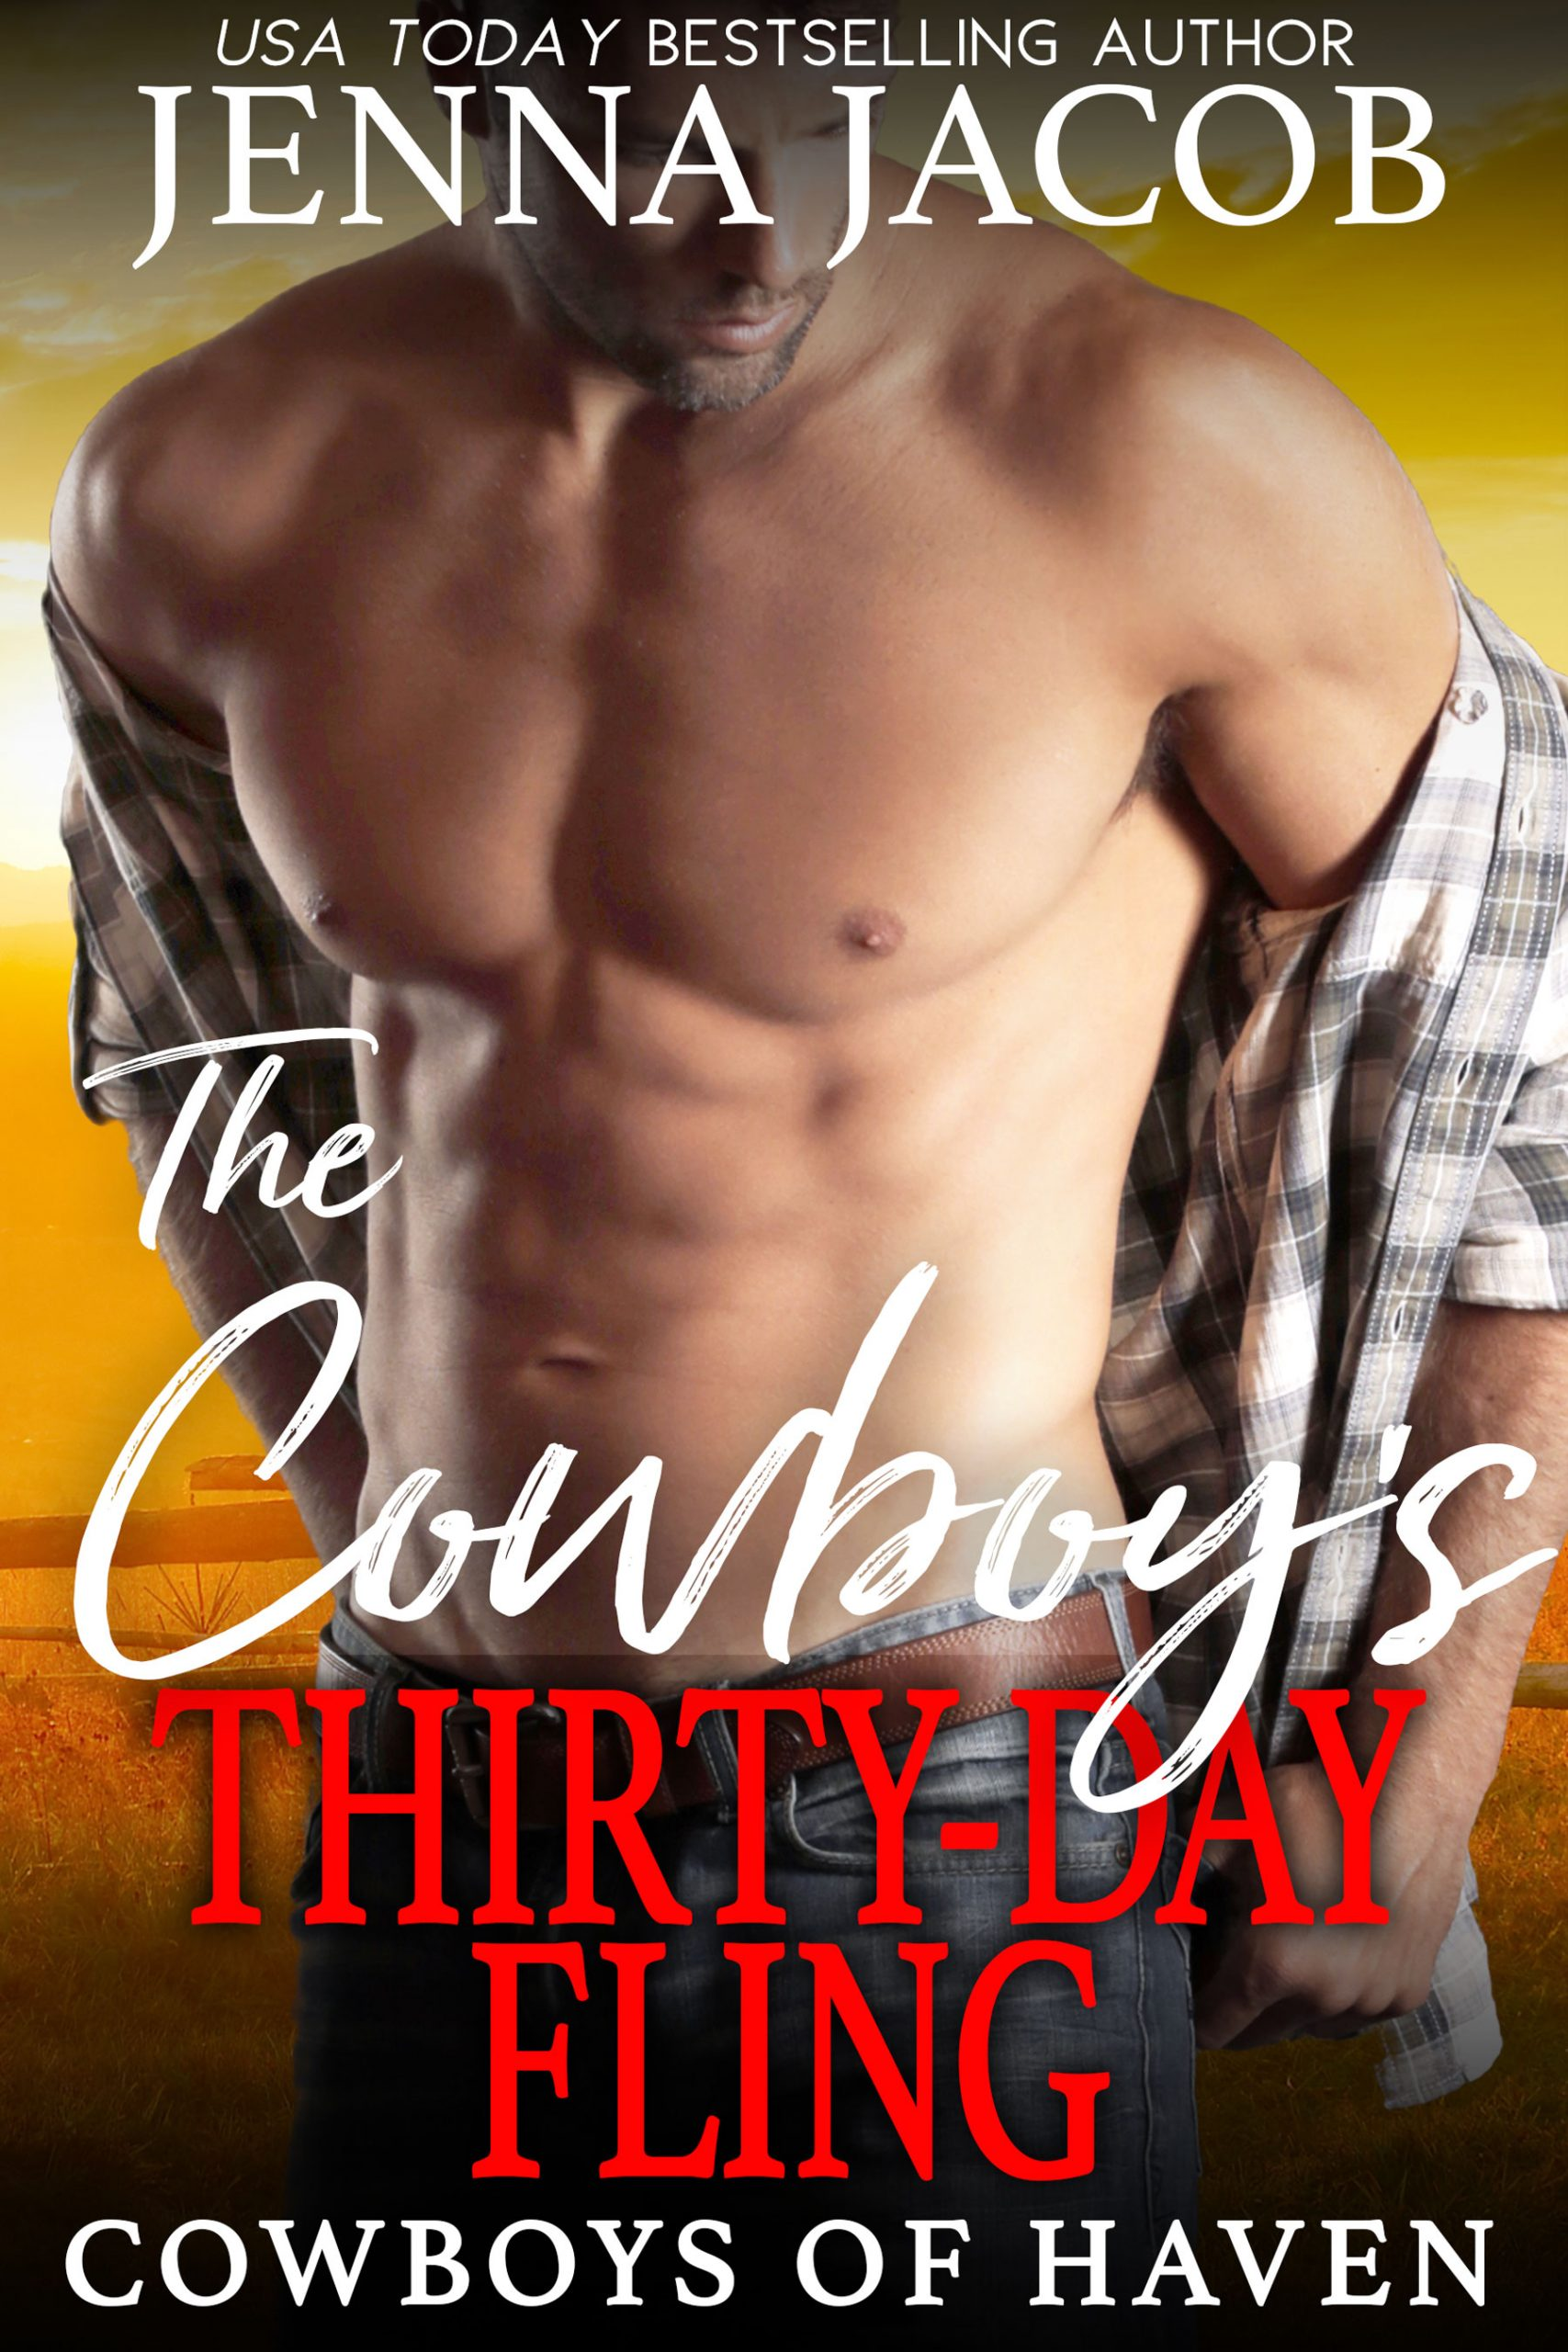 The Cowboy's Thirty-Day Fling